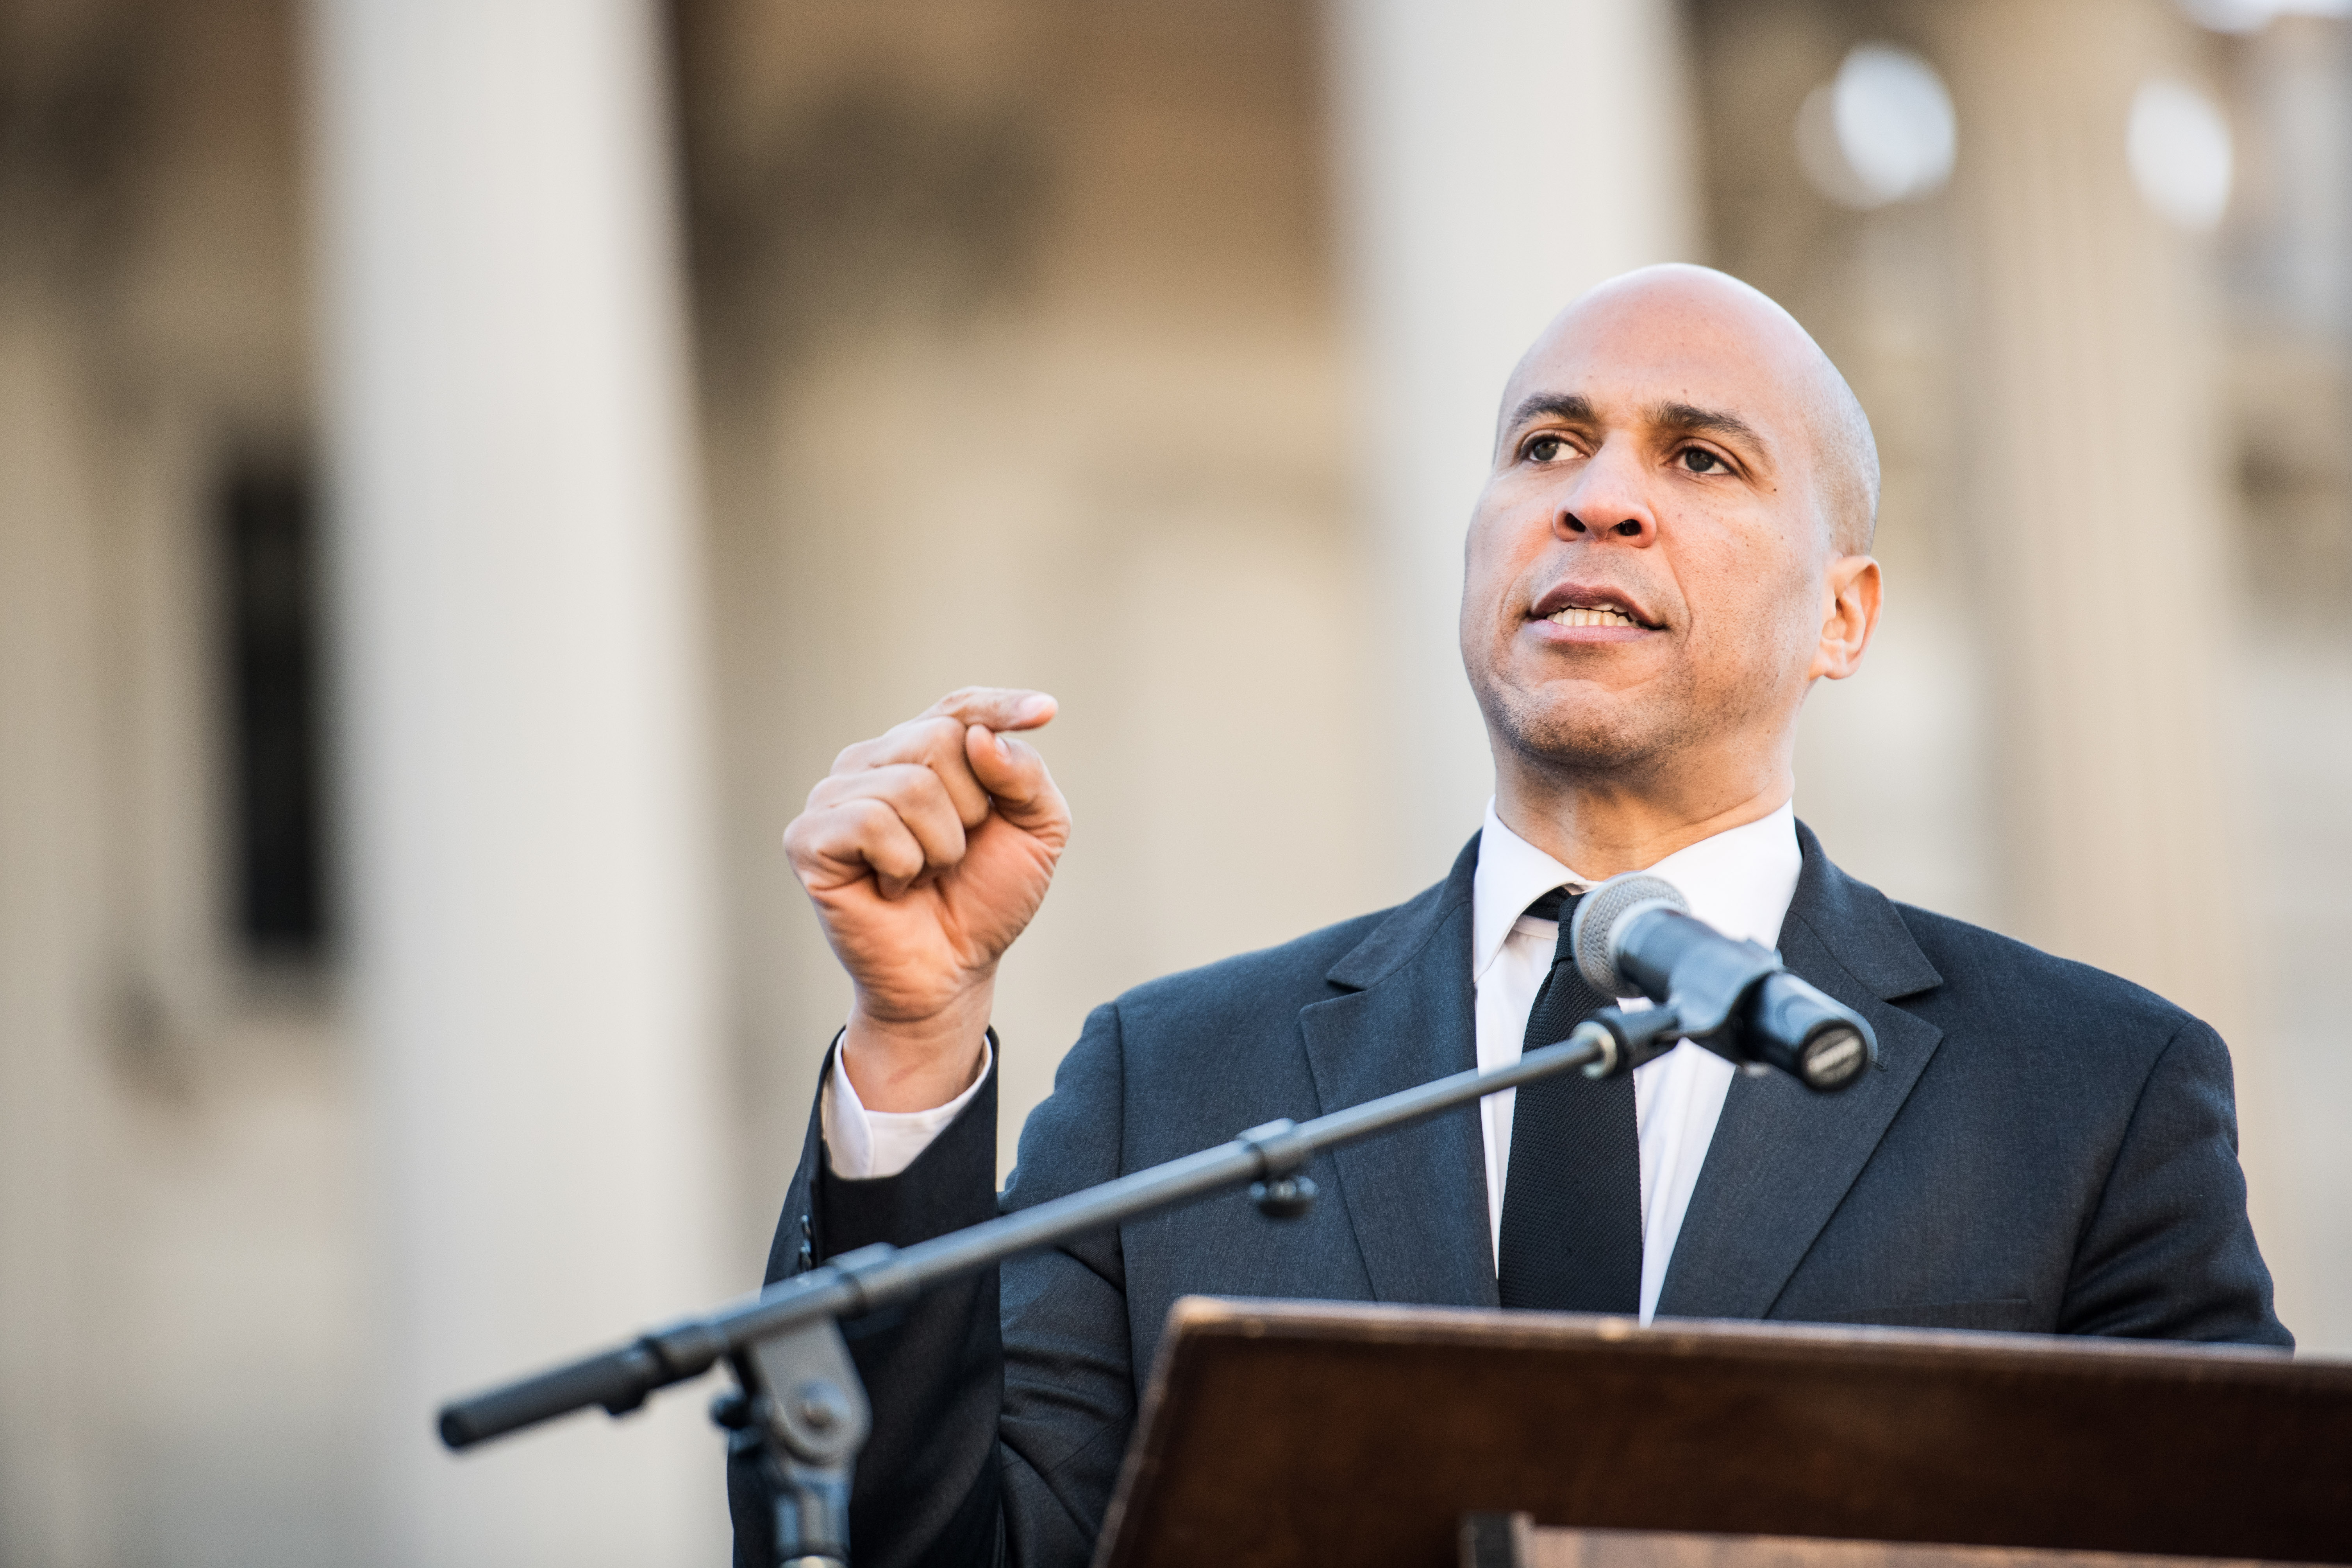 Senator Cory Booker (D-NJ) addresses the crowd during the annual Martin Luther King Jr. Day at the Dome event on January 21, 2019 in Columbia, South Carolina.